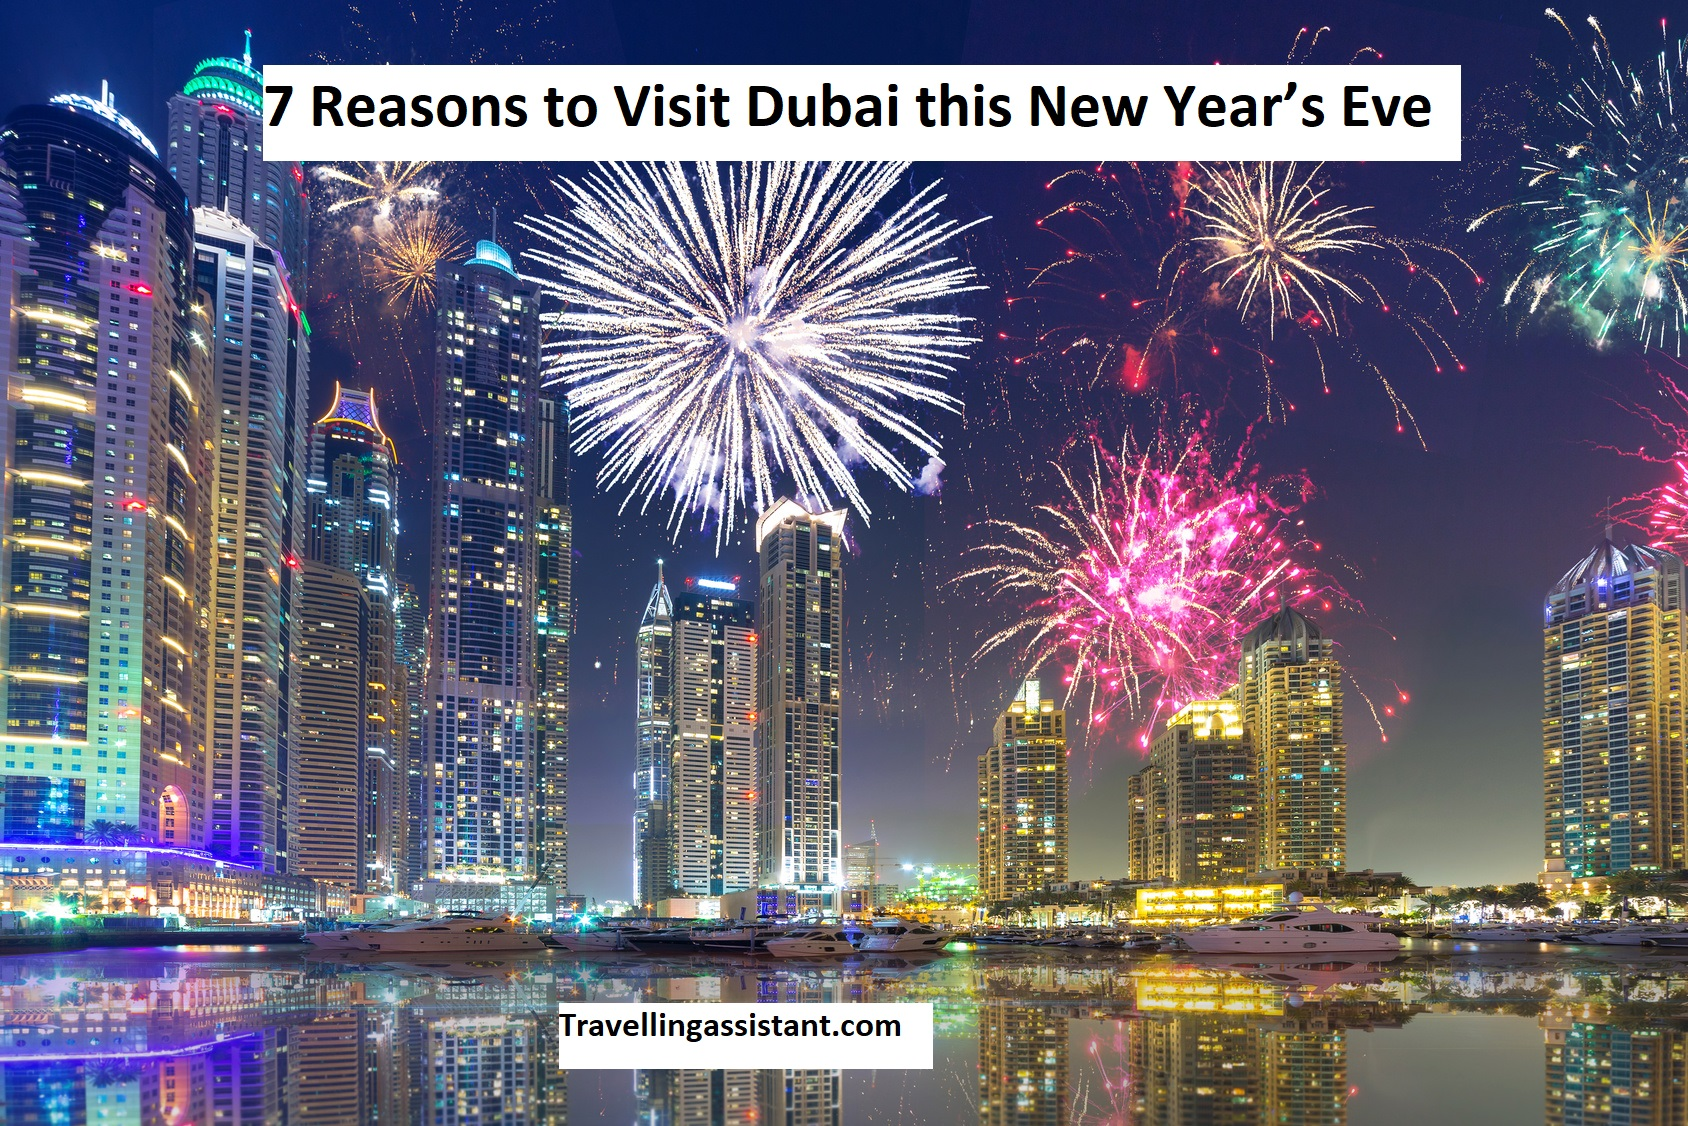 7 Reasons to Visit Dubai this New Year's Eve